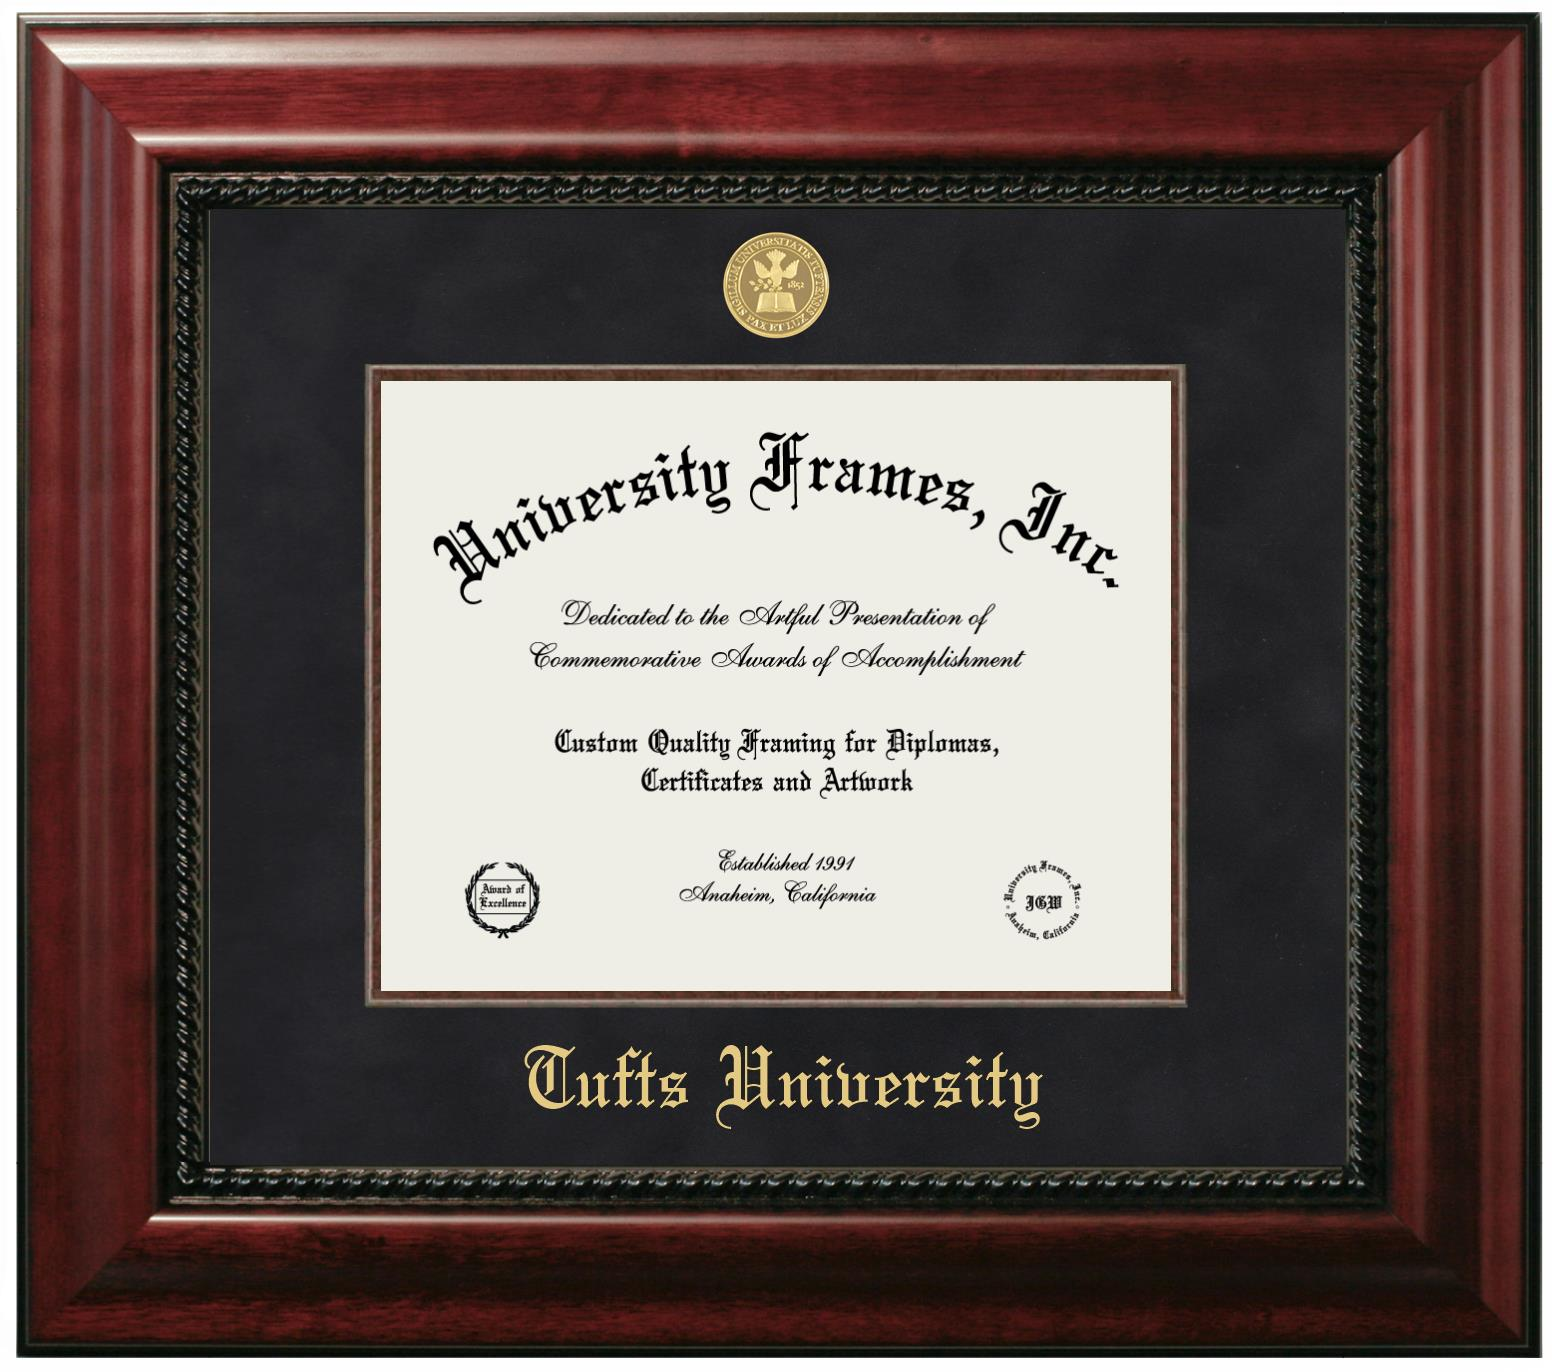 Tufts University Diploma With Announcement Frame In Petite Mahogany With Gold Trim With Black Gold Mats